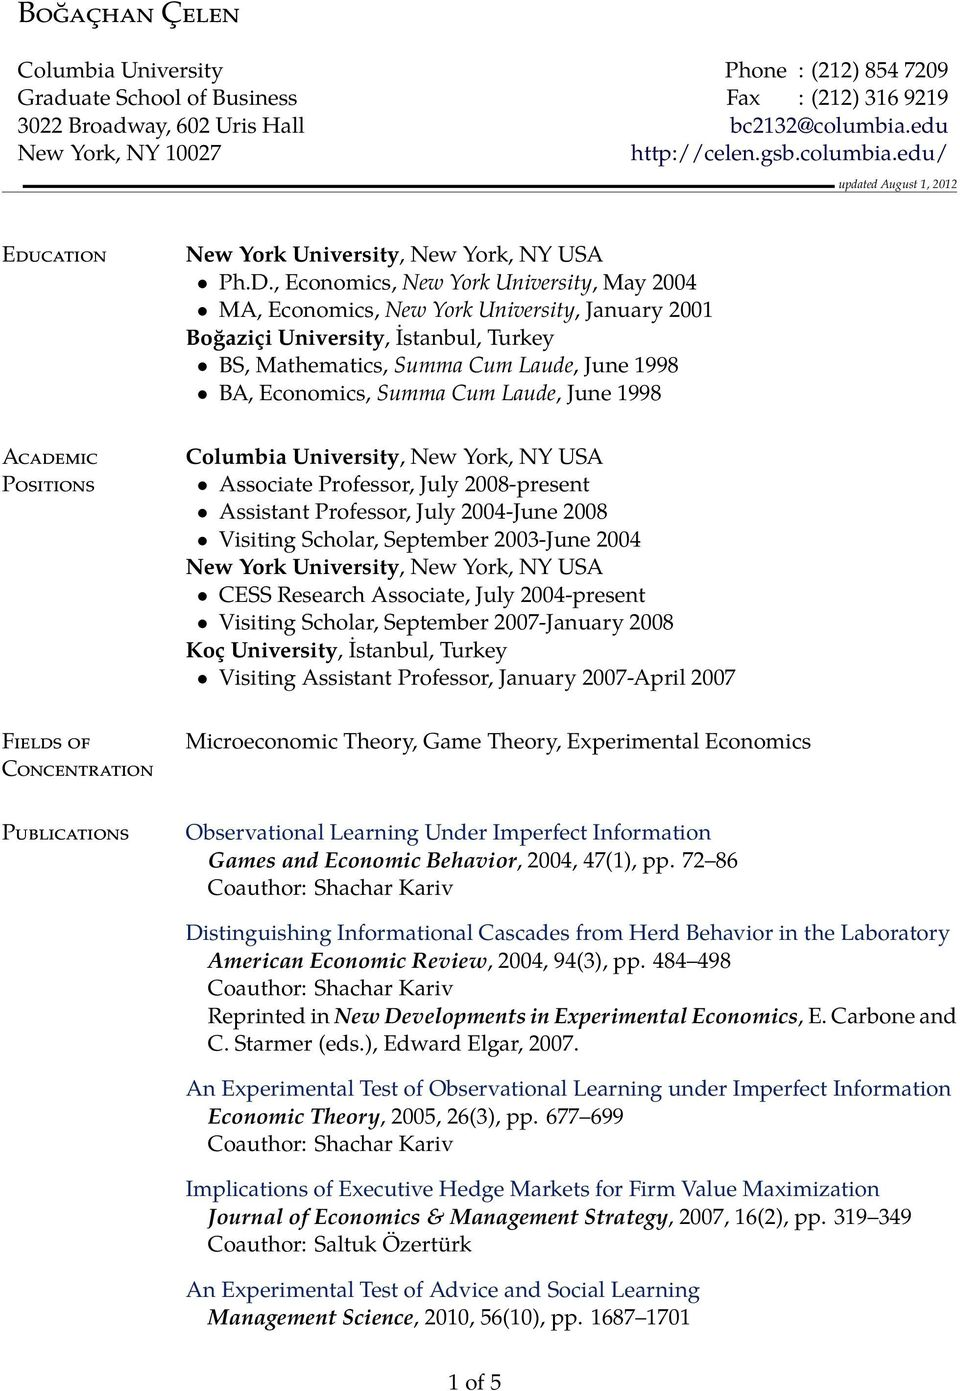 , Economics, New York University, May 2004 MA, Economics, New York University, January 2001 Boğaziçi University, İstanbul, Turkey BS, Mathematics, Summa Cum Laude, June 1998 BA, Economics, Summa Cum